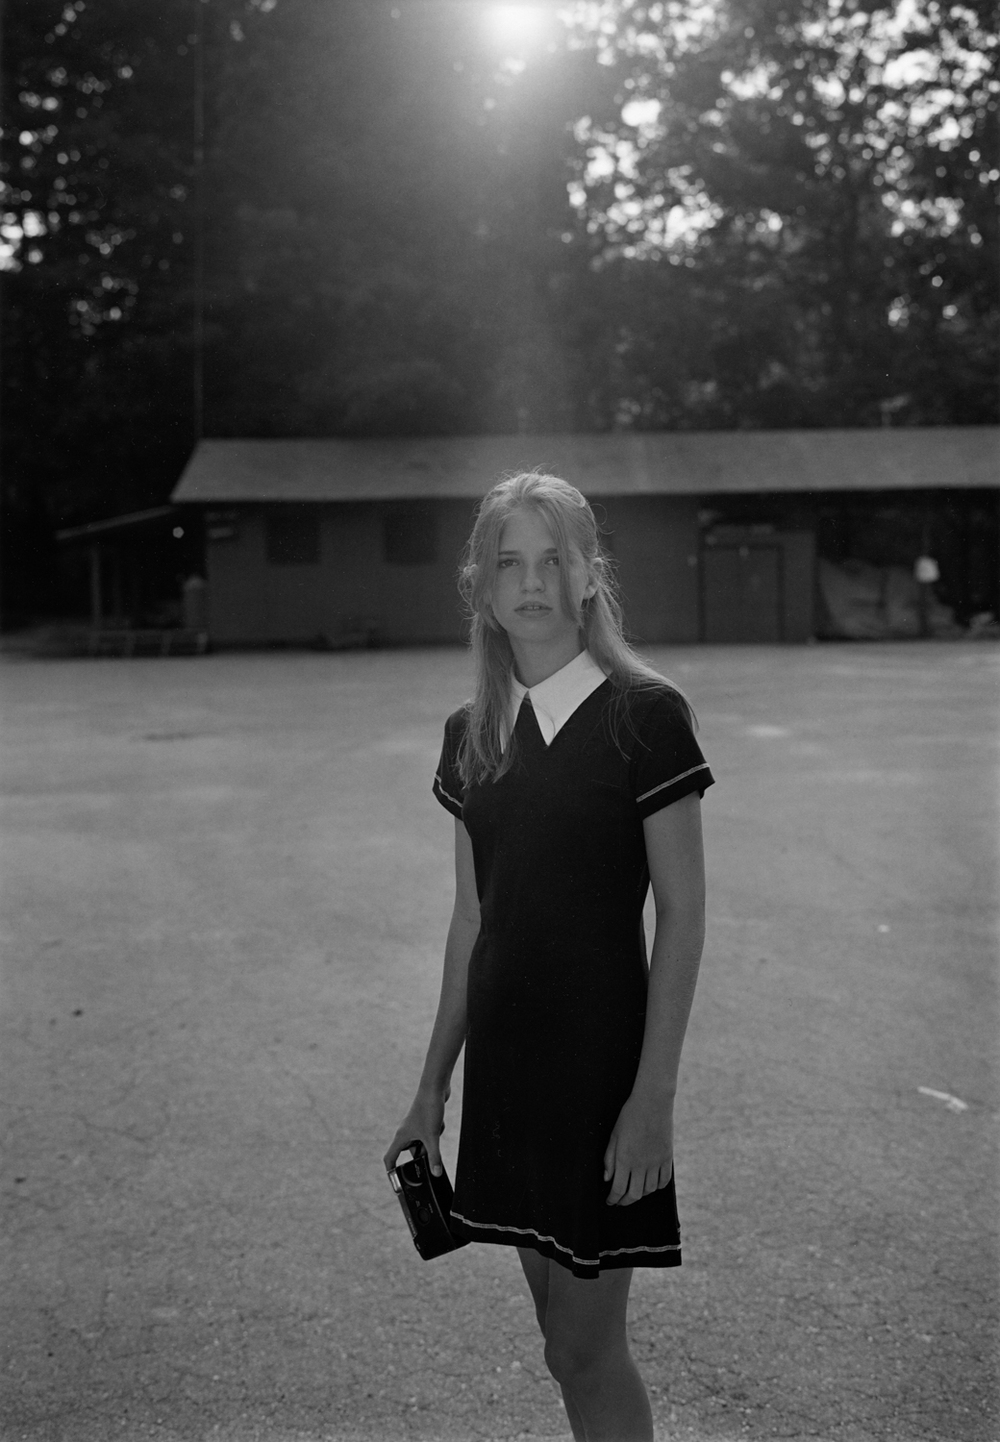 Mark Steinmetz, Summer Camp, Hendersonville, NC, 1995, Gelatin silver print, 24 x 20 inches, courtesy of Yancey Richardson Gallery